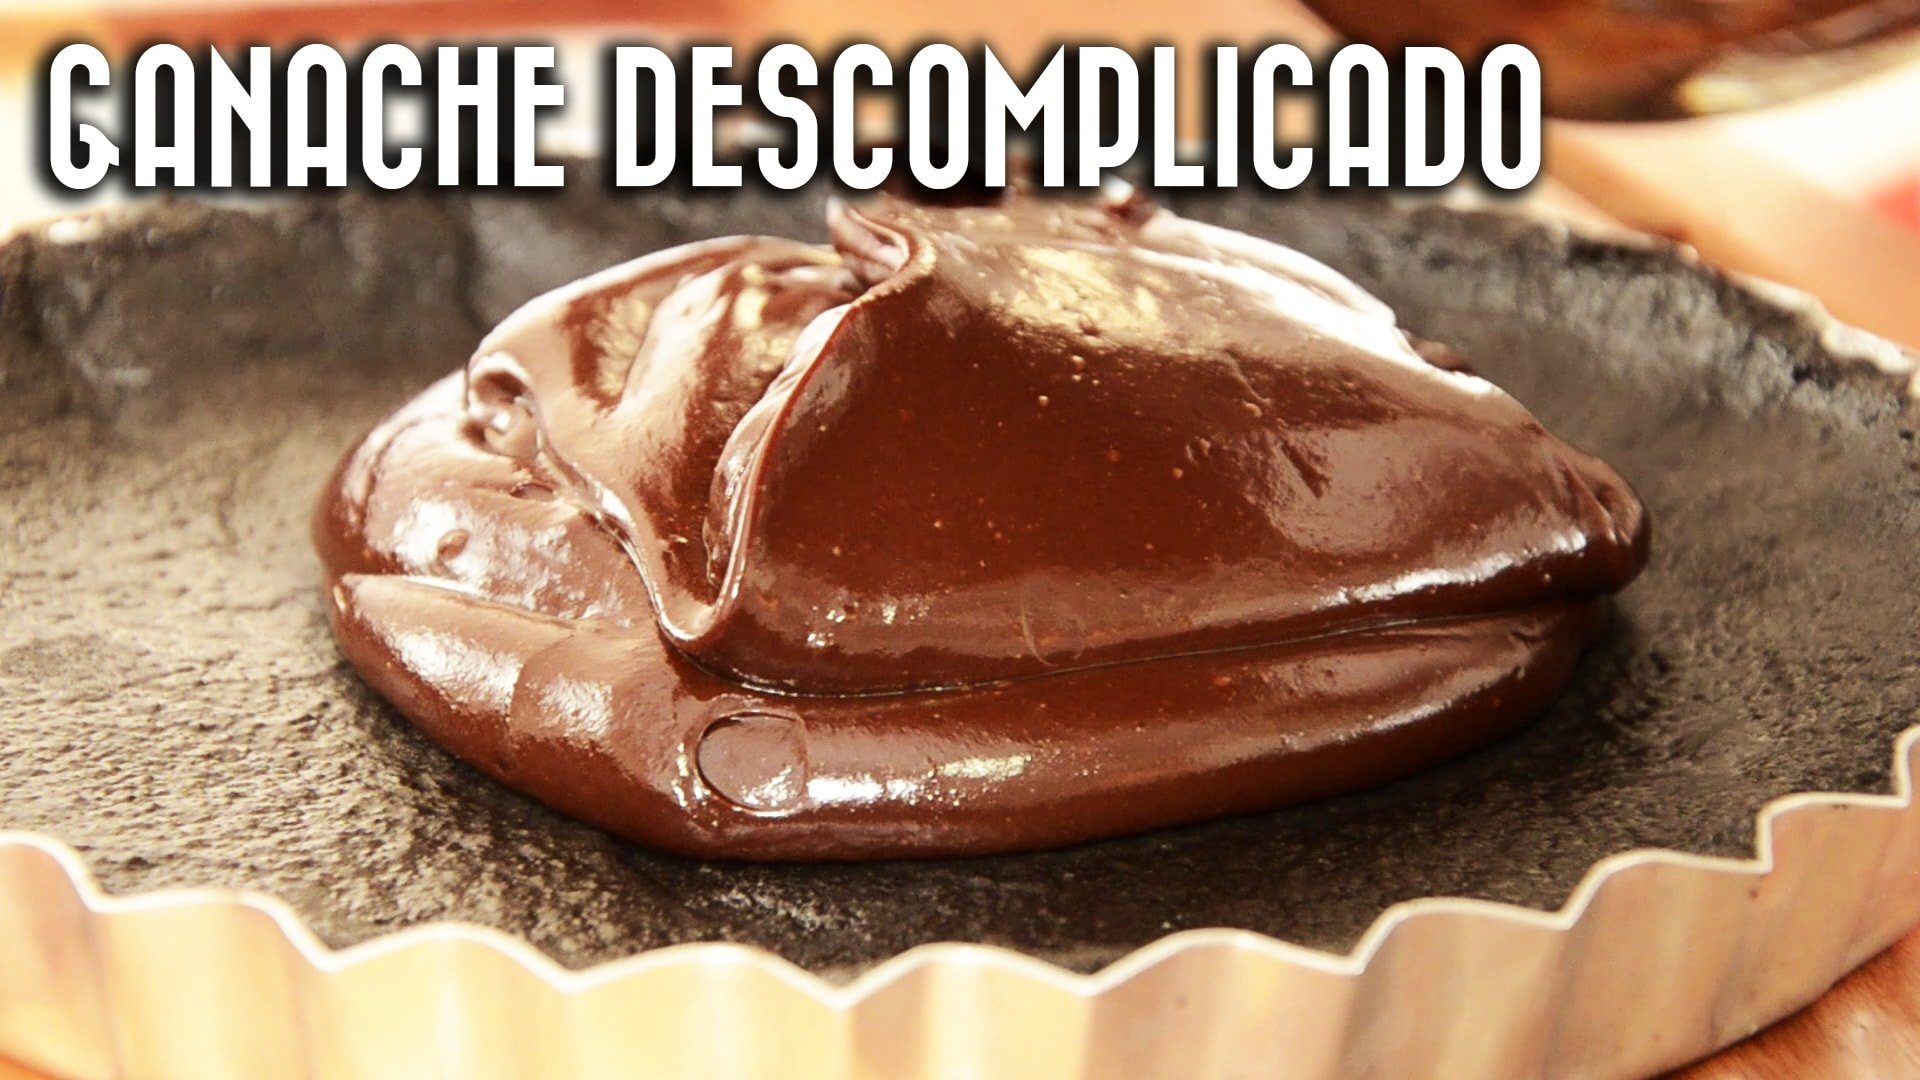 GANACHE-DESCOMPLICADO-THUMB-min GANACHE DE CHOCOLATE DESCOMPLICADO